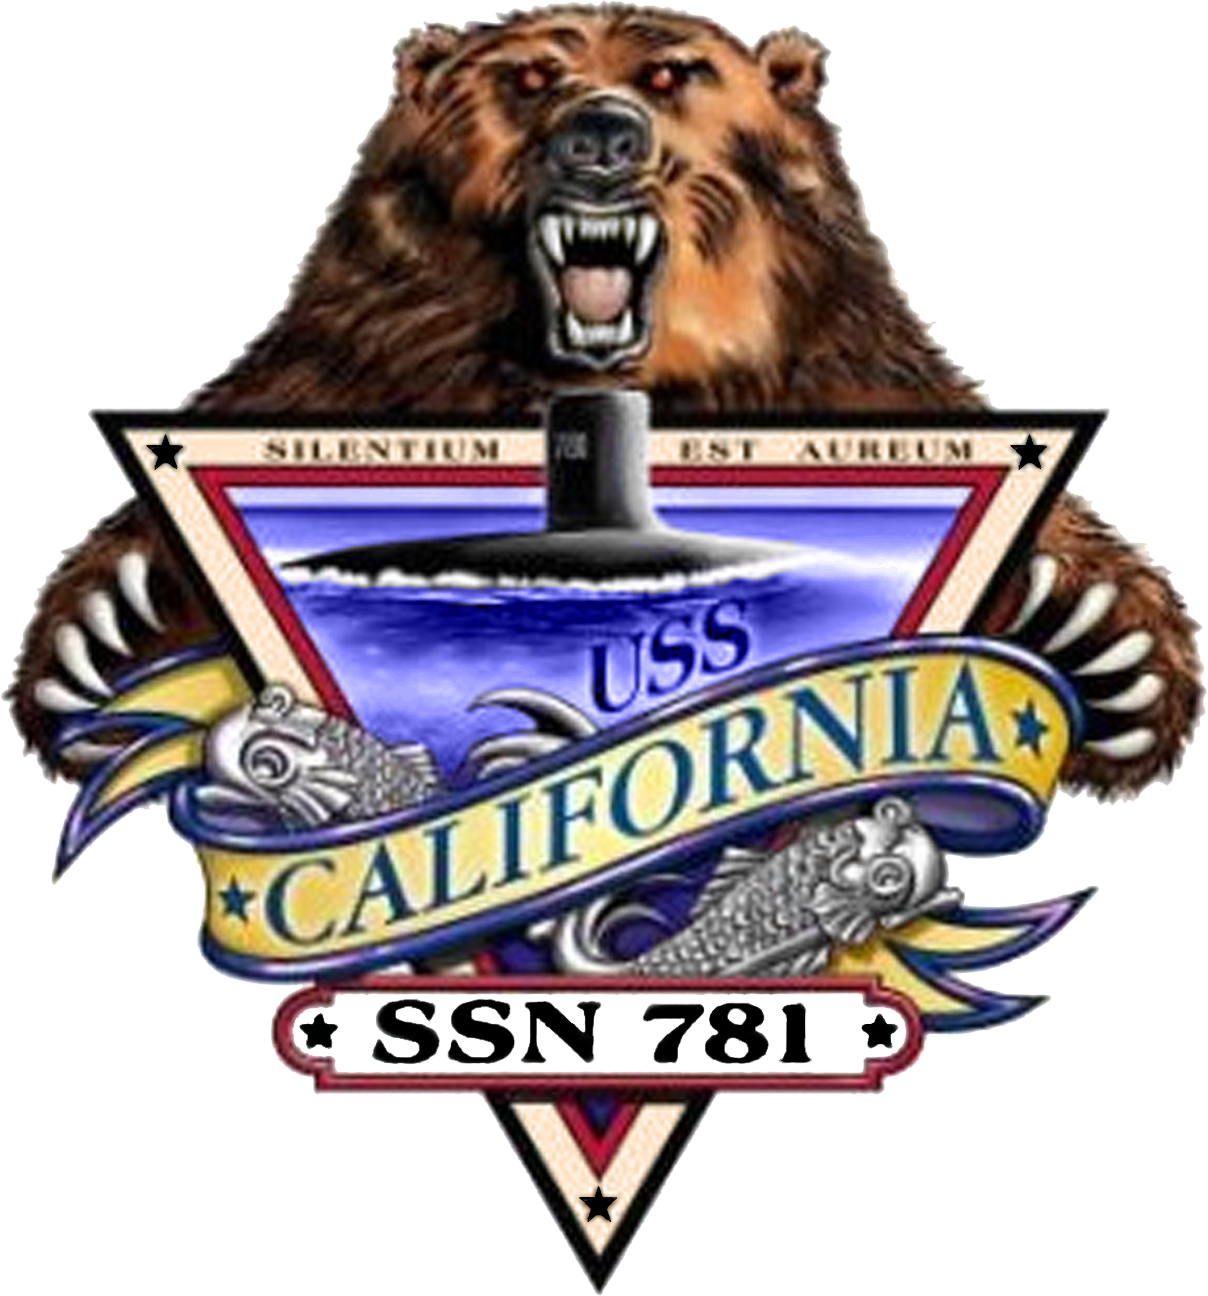 File:USS California SSN-781 Crest.png